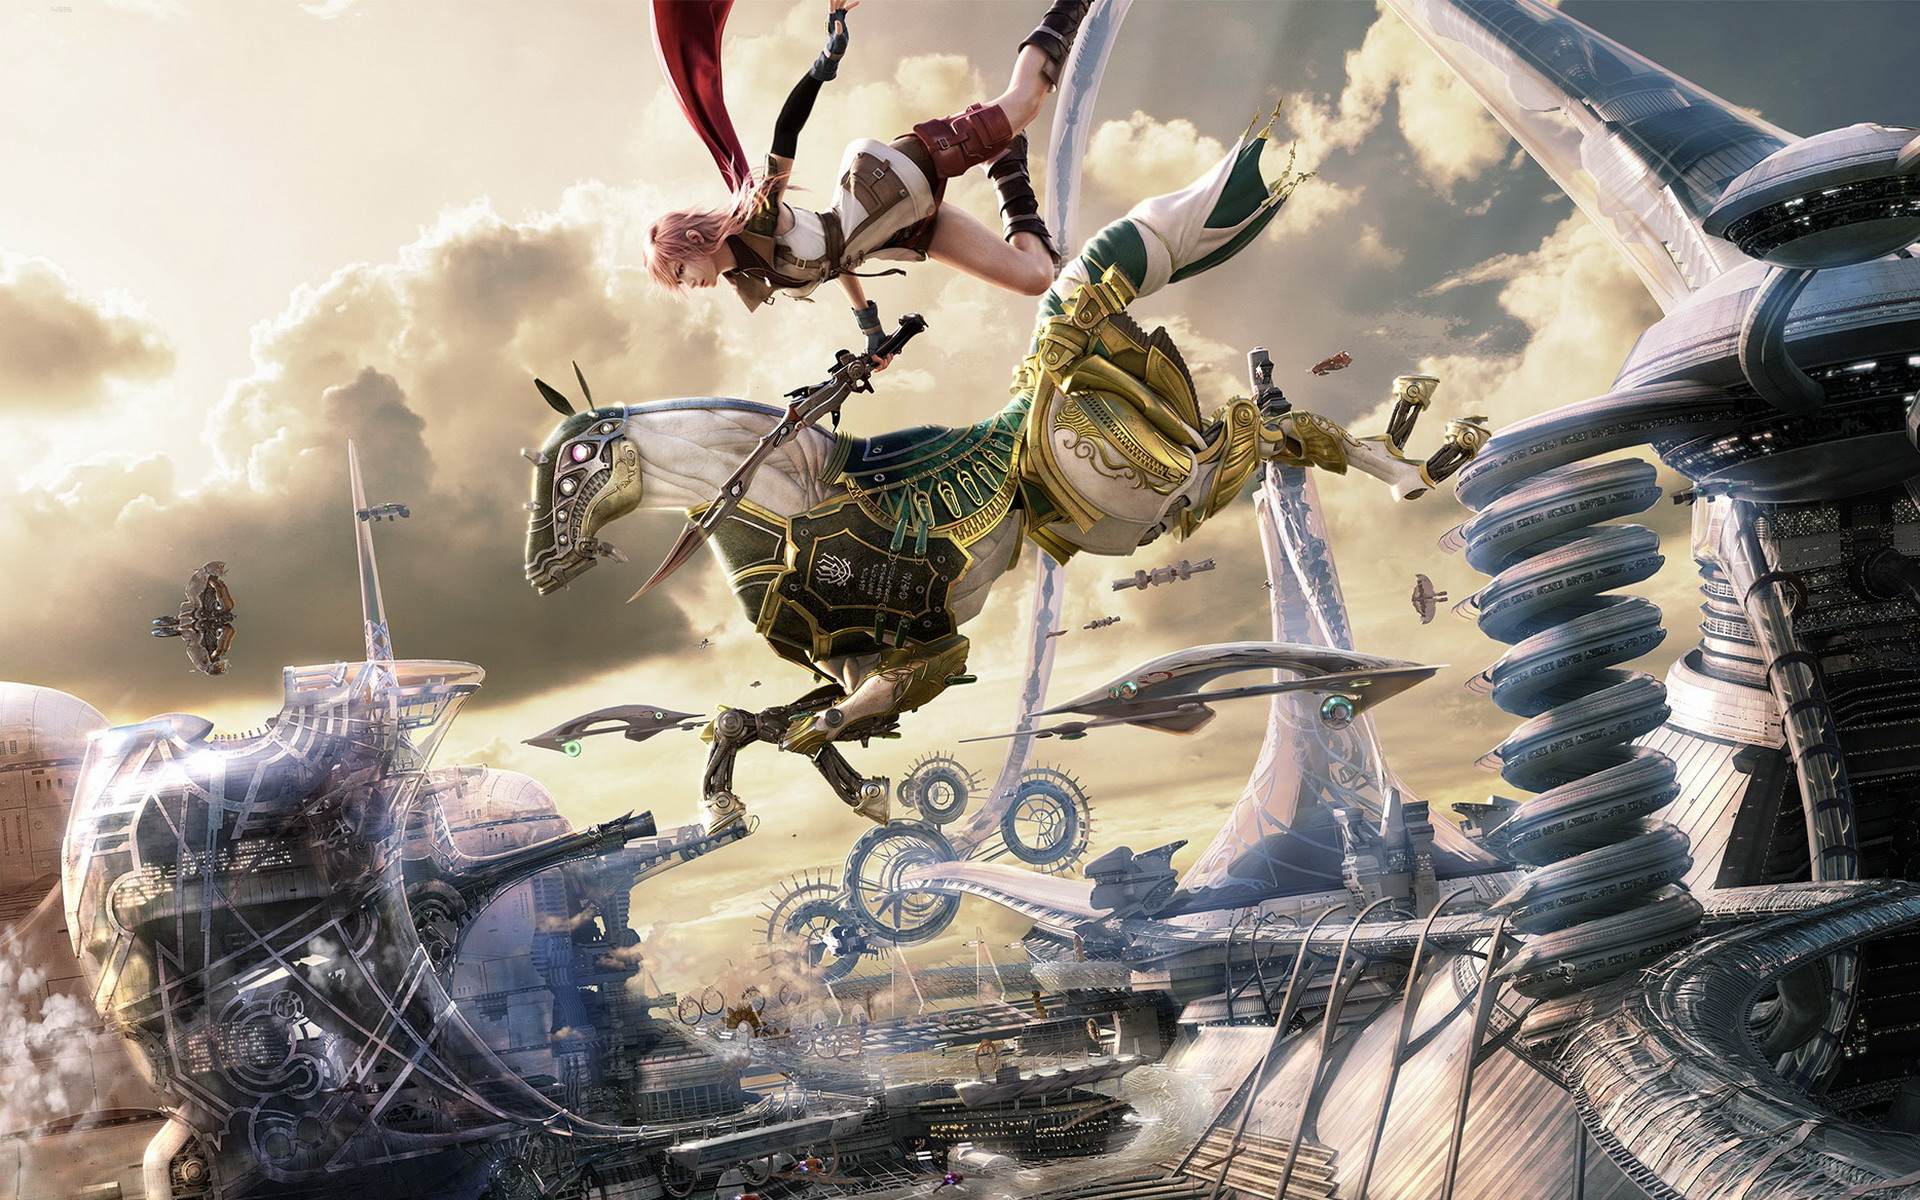 Final Fantasy XIII Wallpapers HD Wallpapers 1920x1200